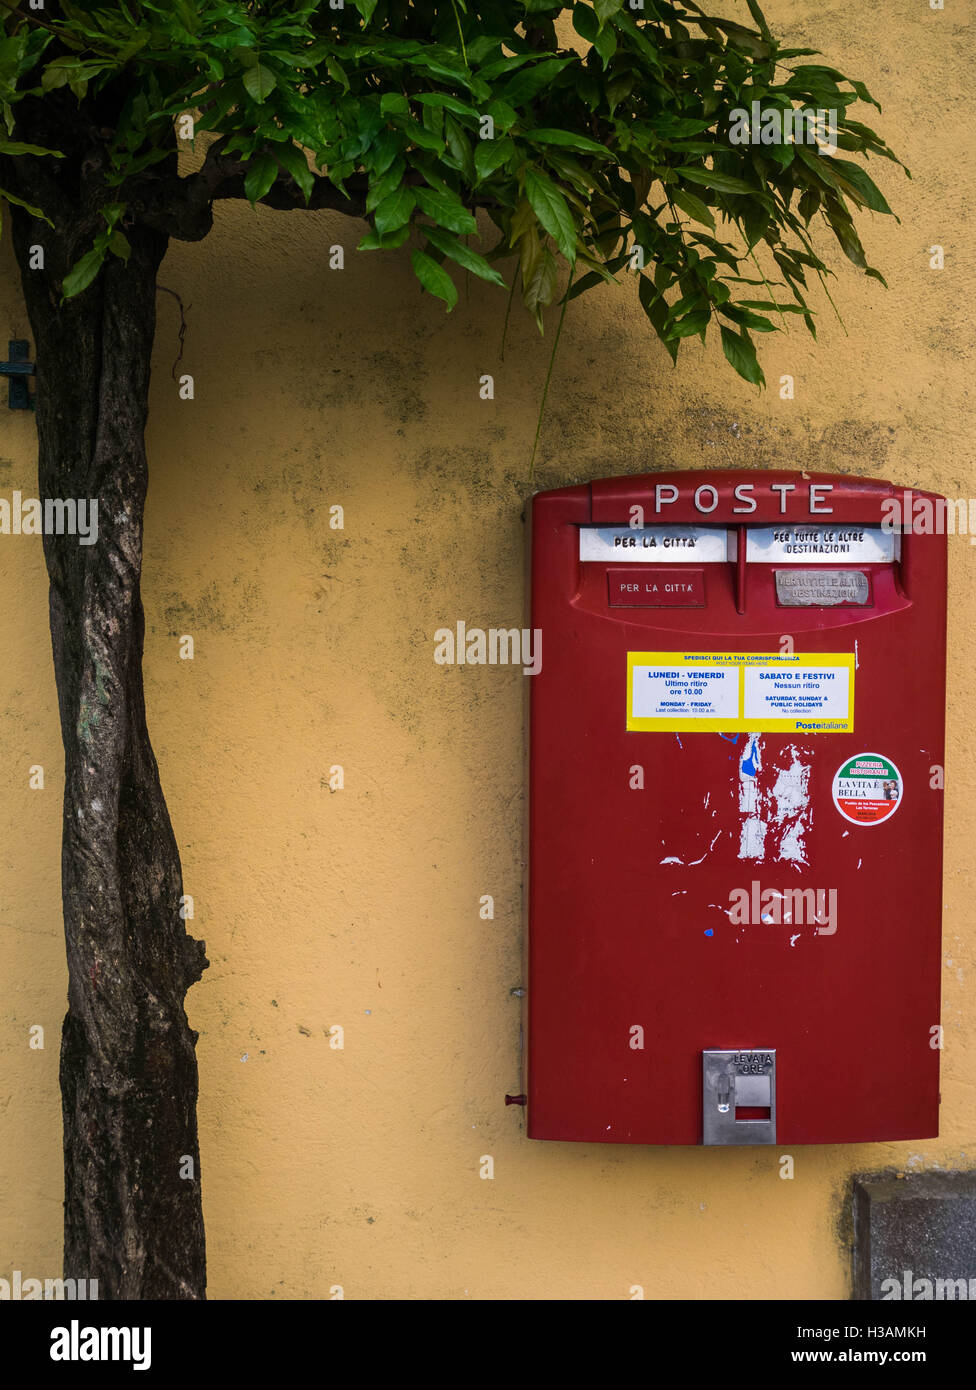 Mail box for post in Italy, red on yellow wall. - Stock Image